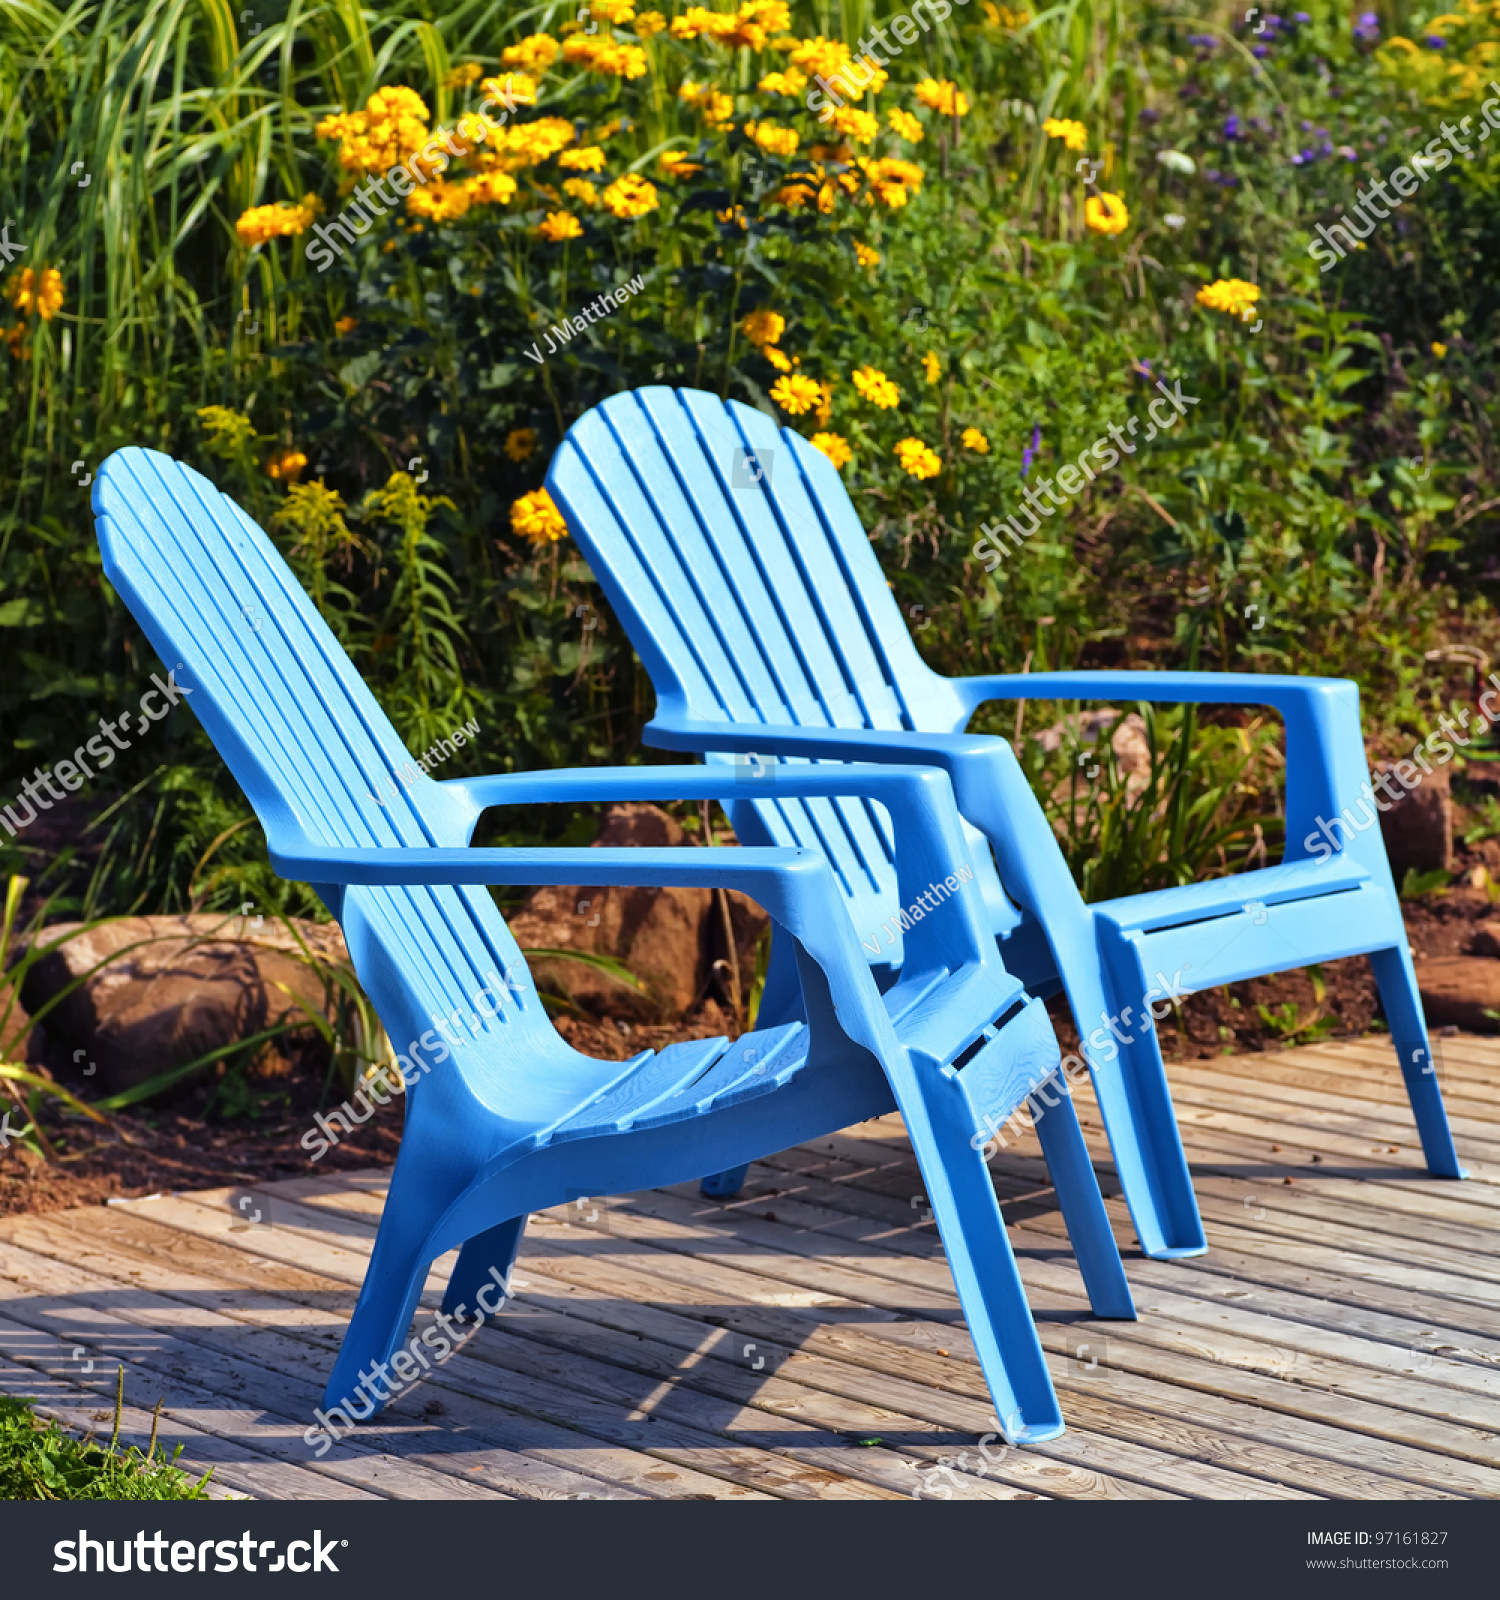 brilliant blue plastic outdoor adirondack chairs on the